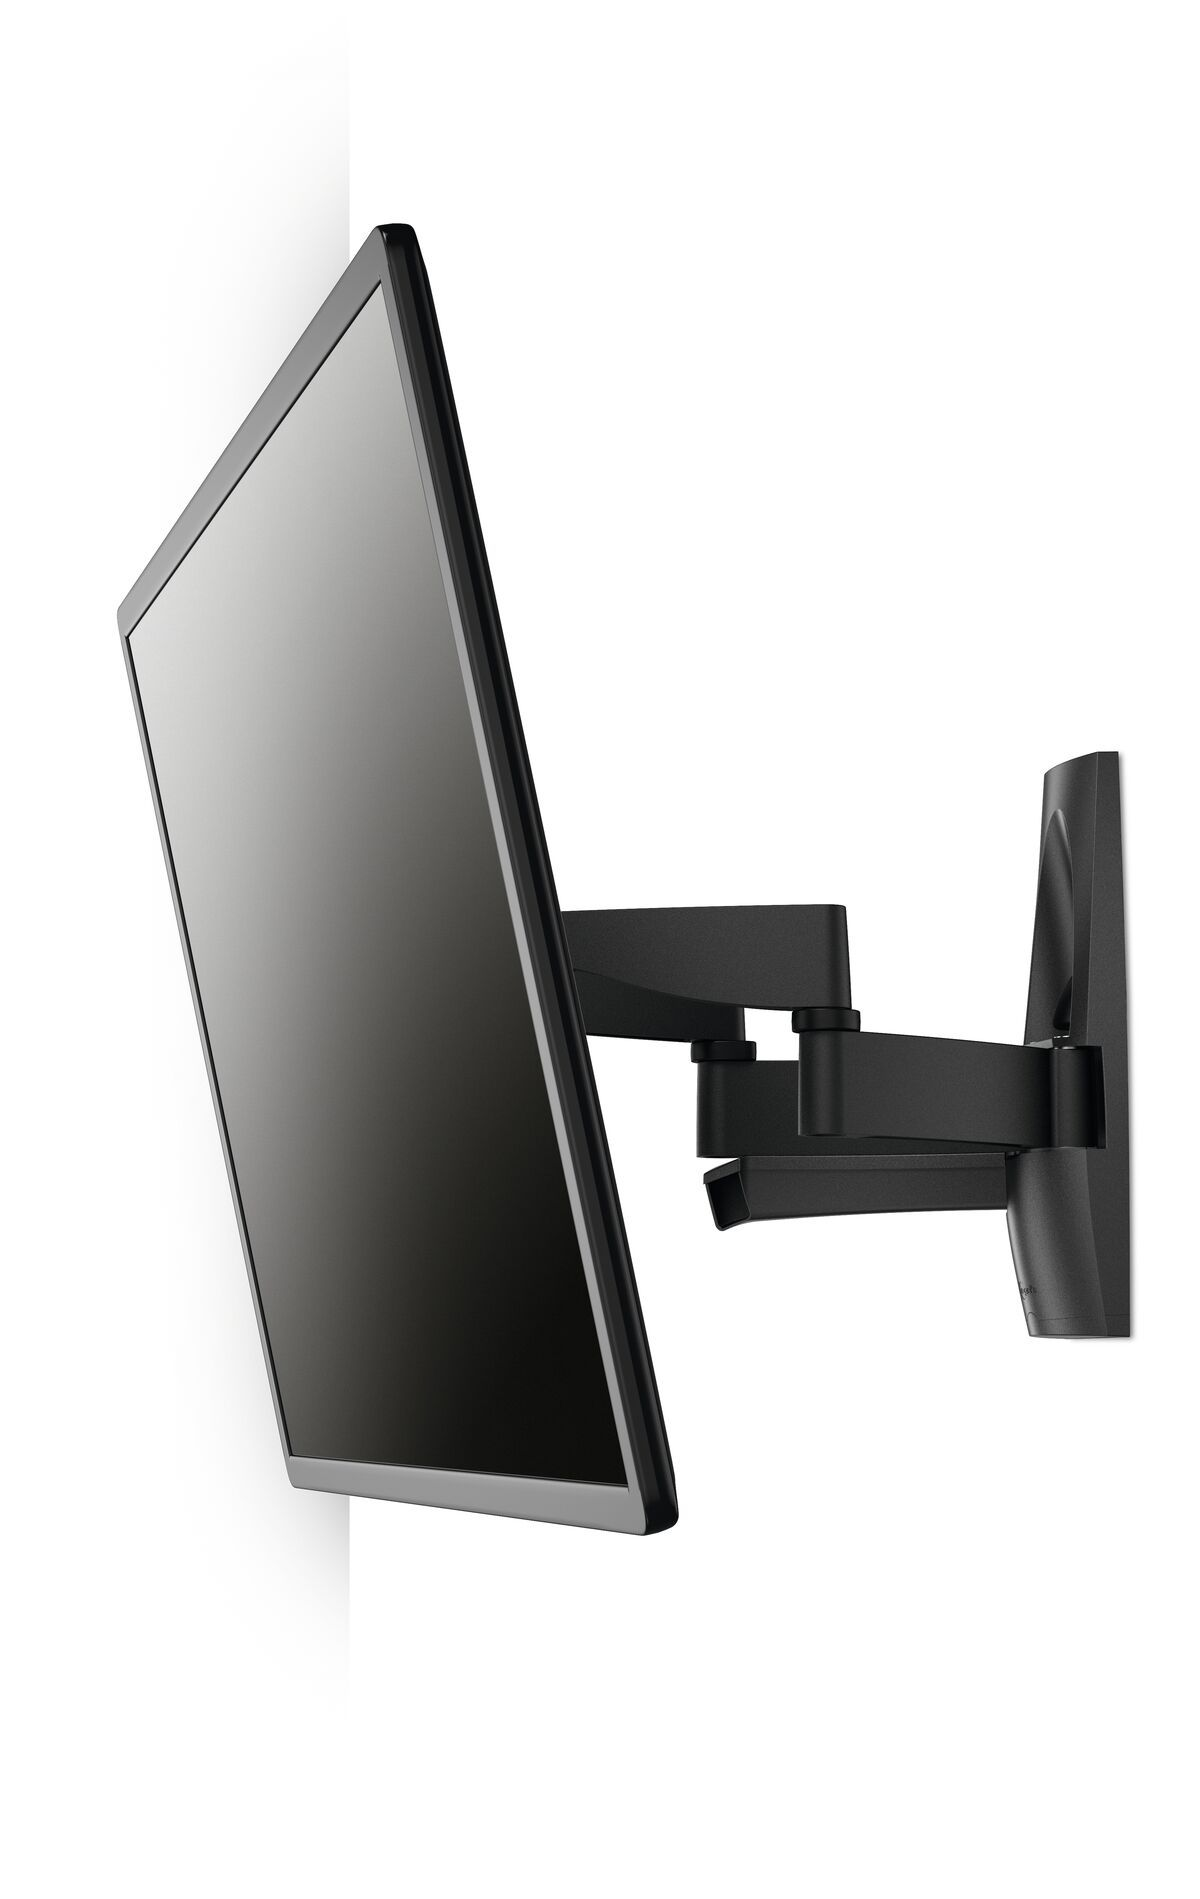 Vogel's WALL 3250 Full-Motion TV Wall Mount - Suitable for Forward and turning motion (up to 120°) - Suitable for Tilt up to 15° - Suitable for White wall